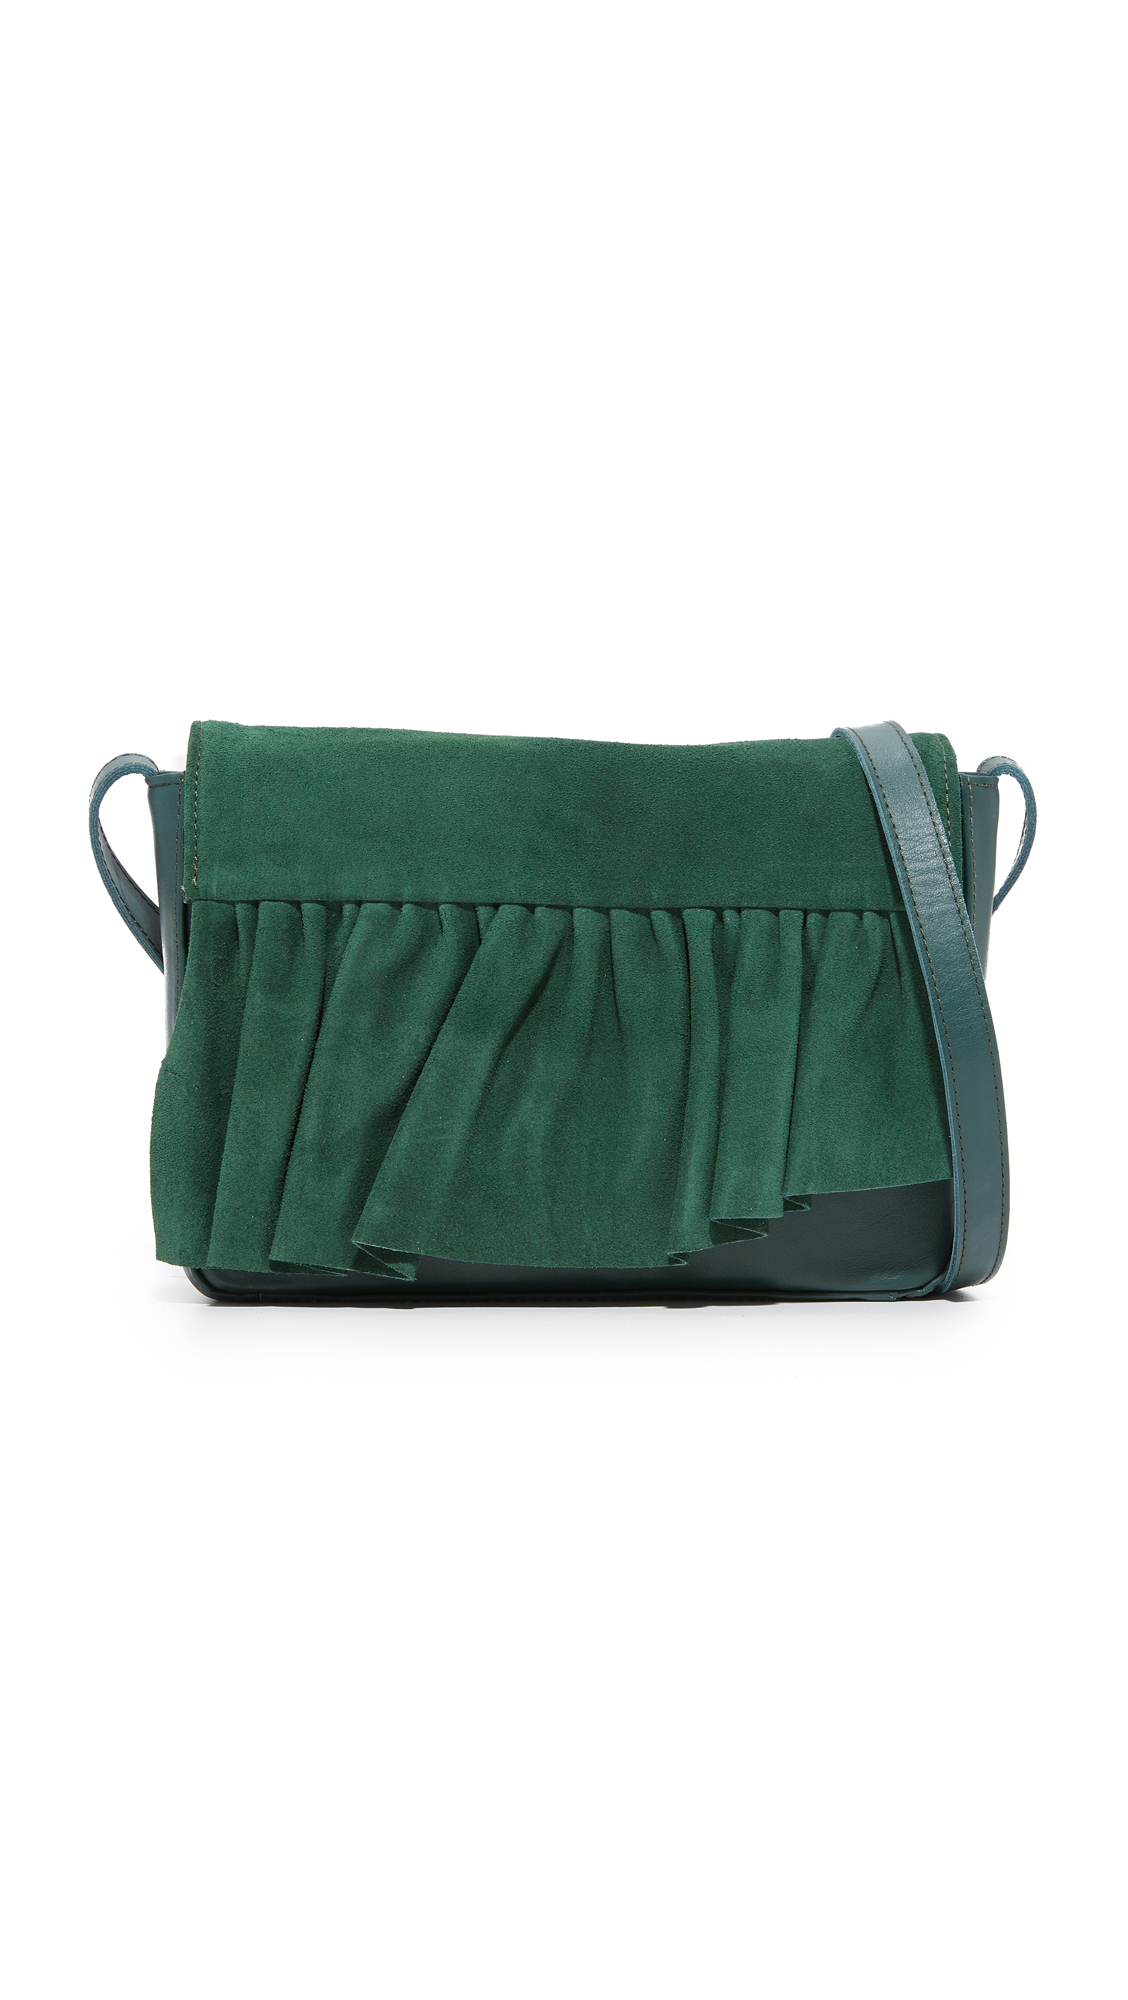 Marie Turnor Accessories Small Ruffle Cross Body Bag - Forest